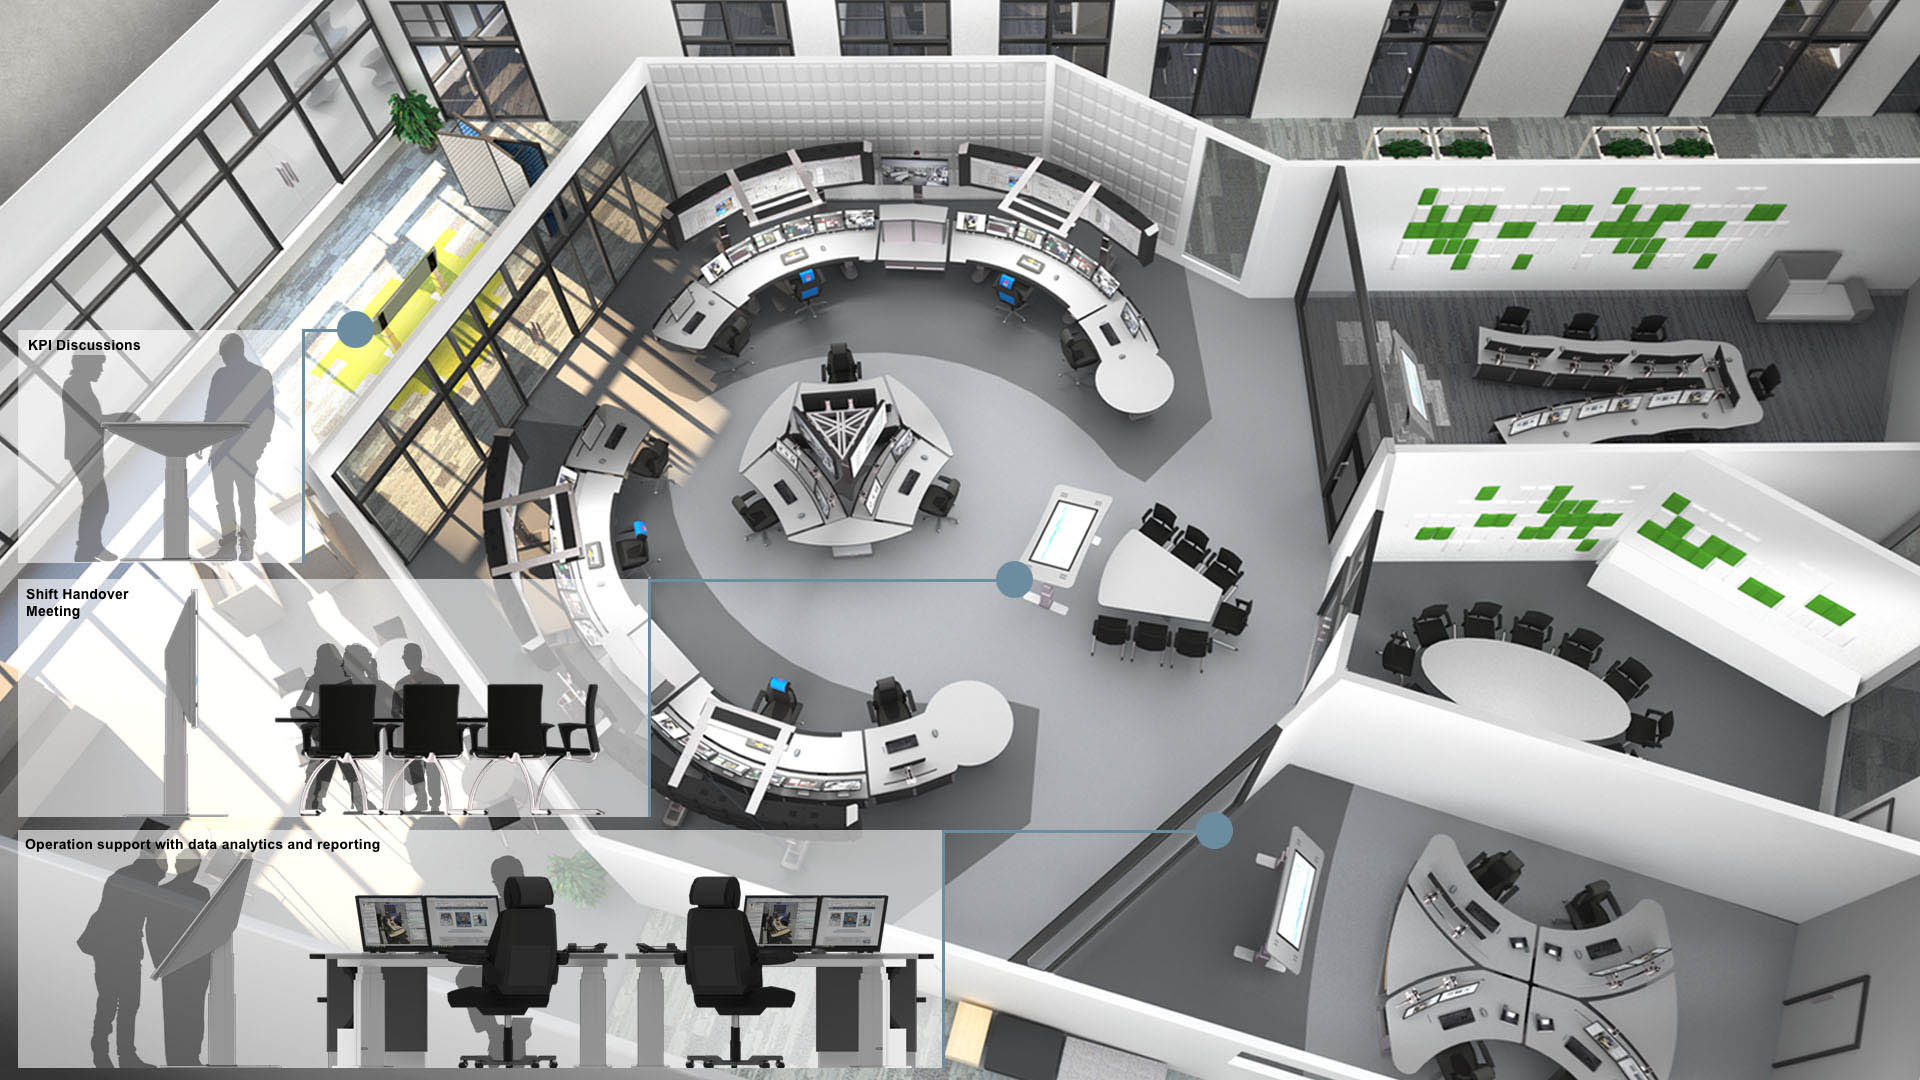 Data Analytics In The Modern Control Room With Abb